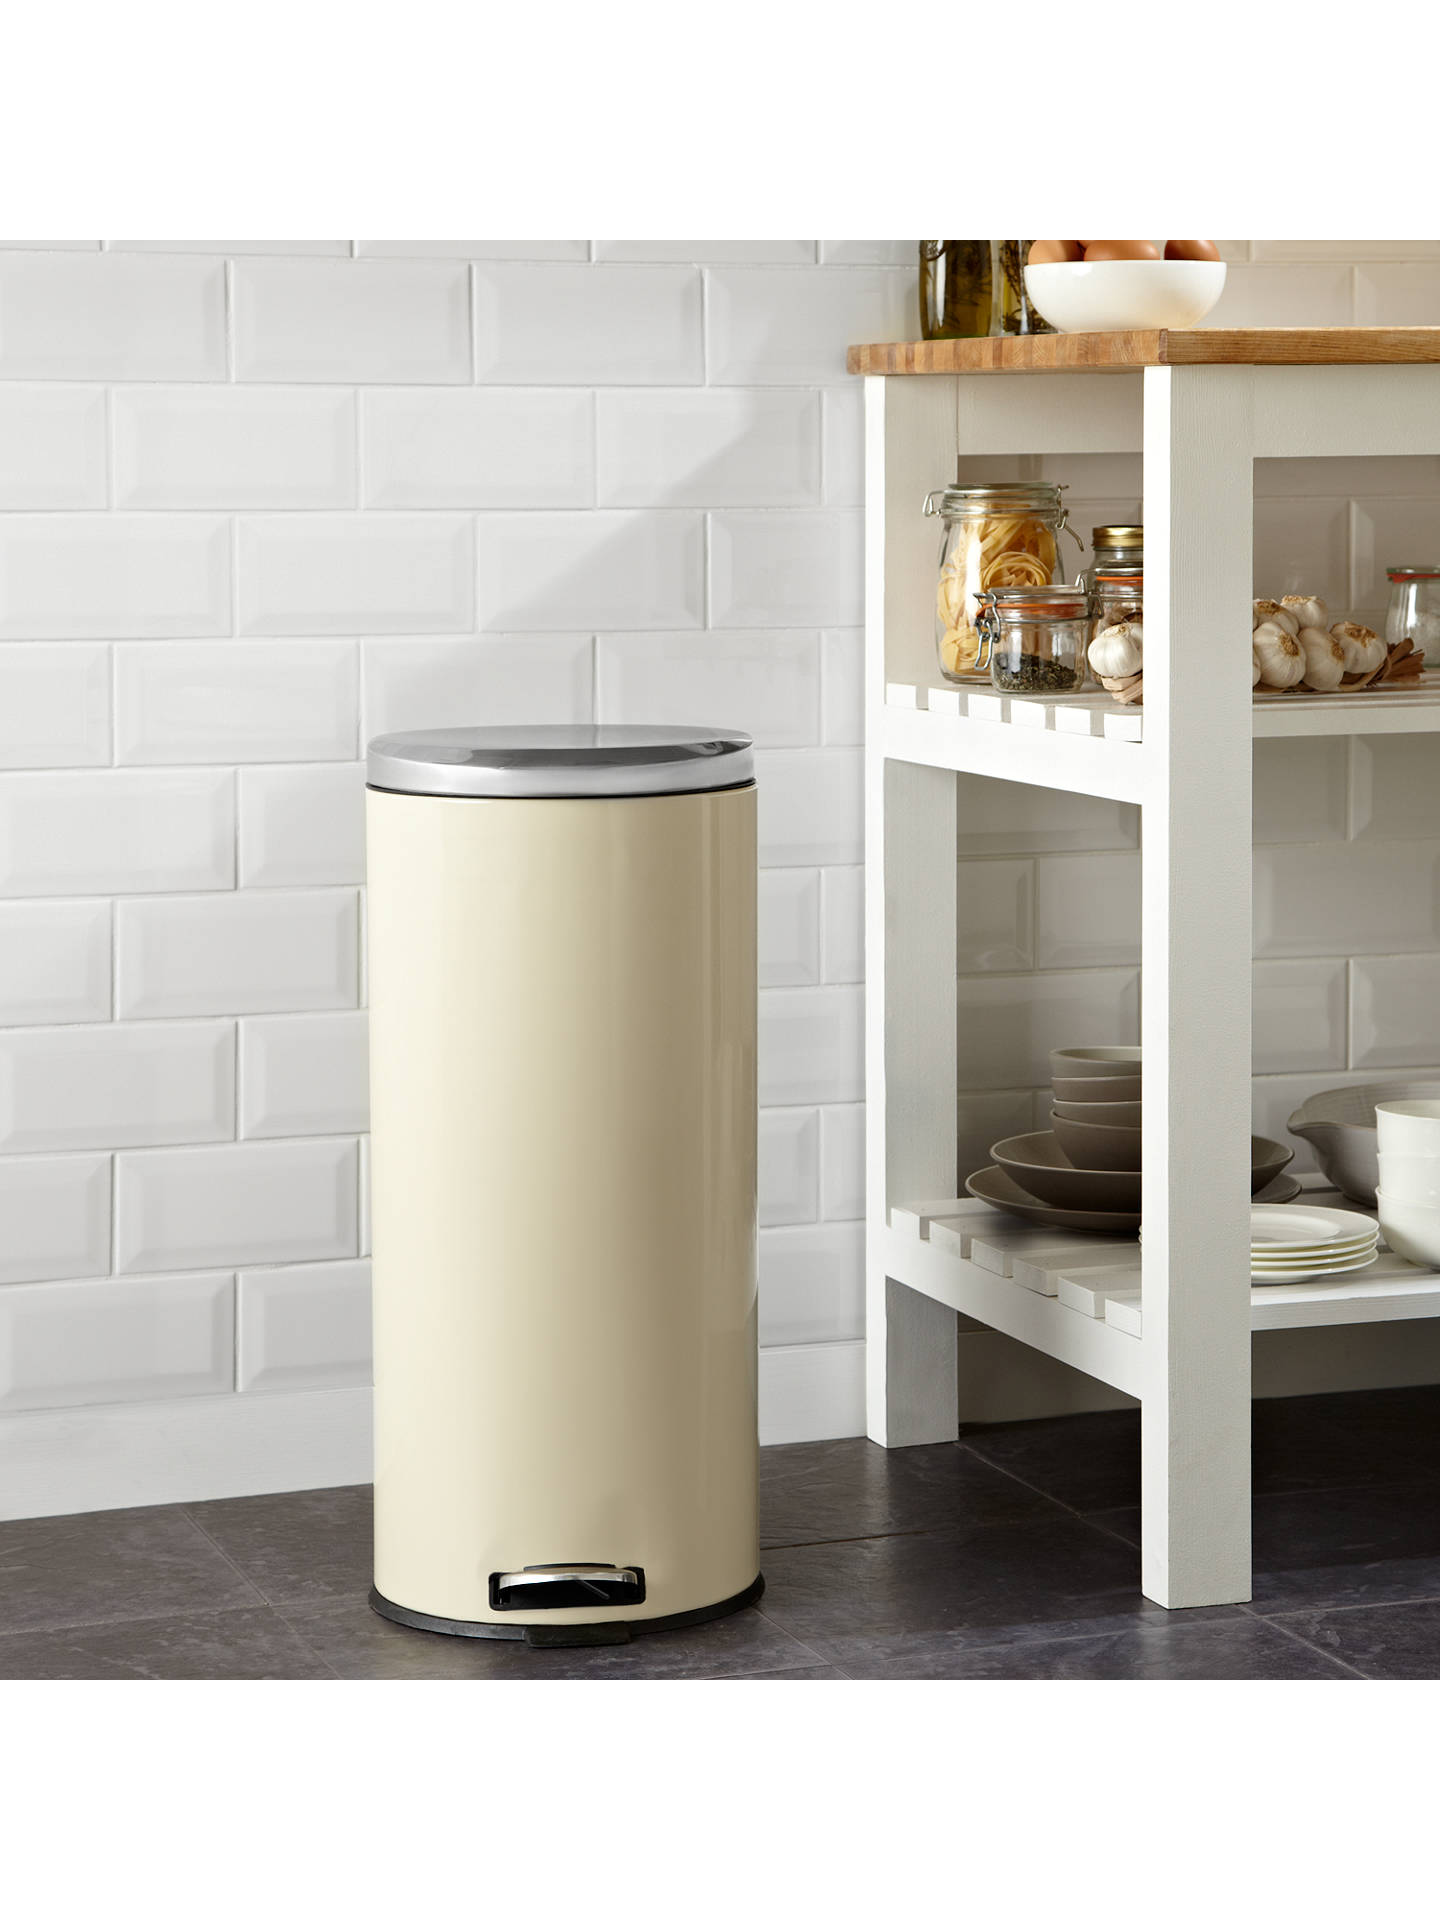 BuyJohn Lewis & Partners Pedal Bin, 30L, Cream Online at johnlewis.com